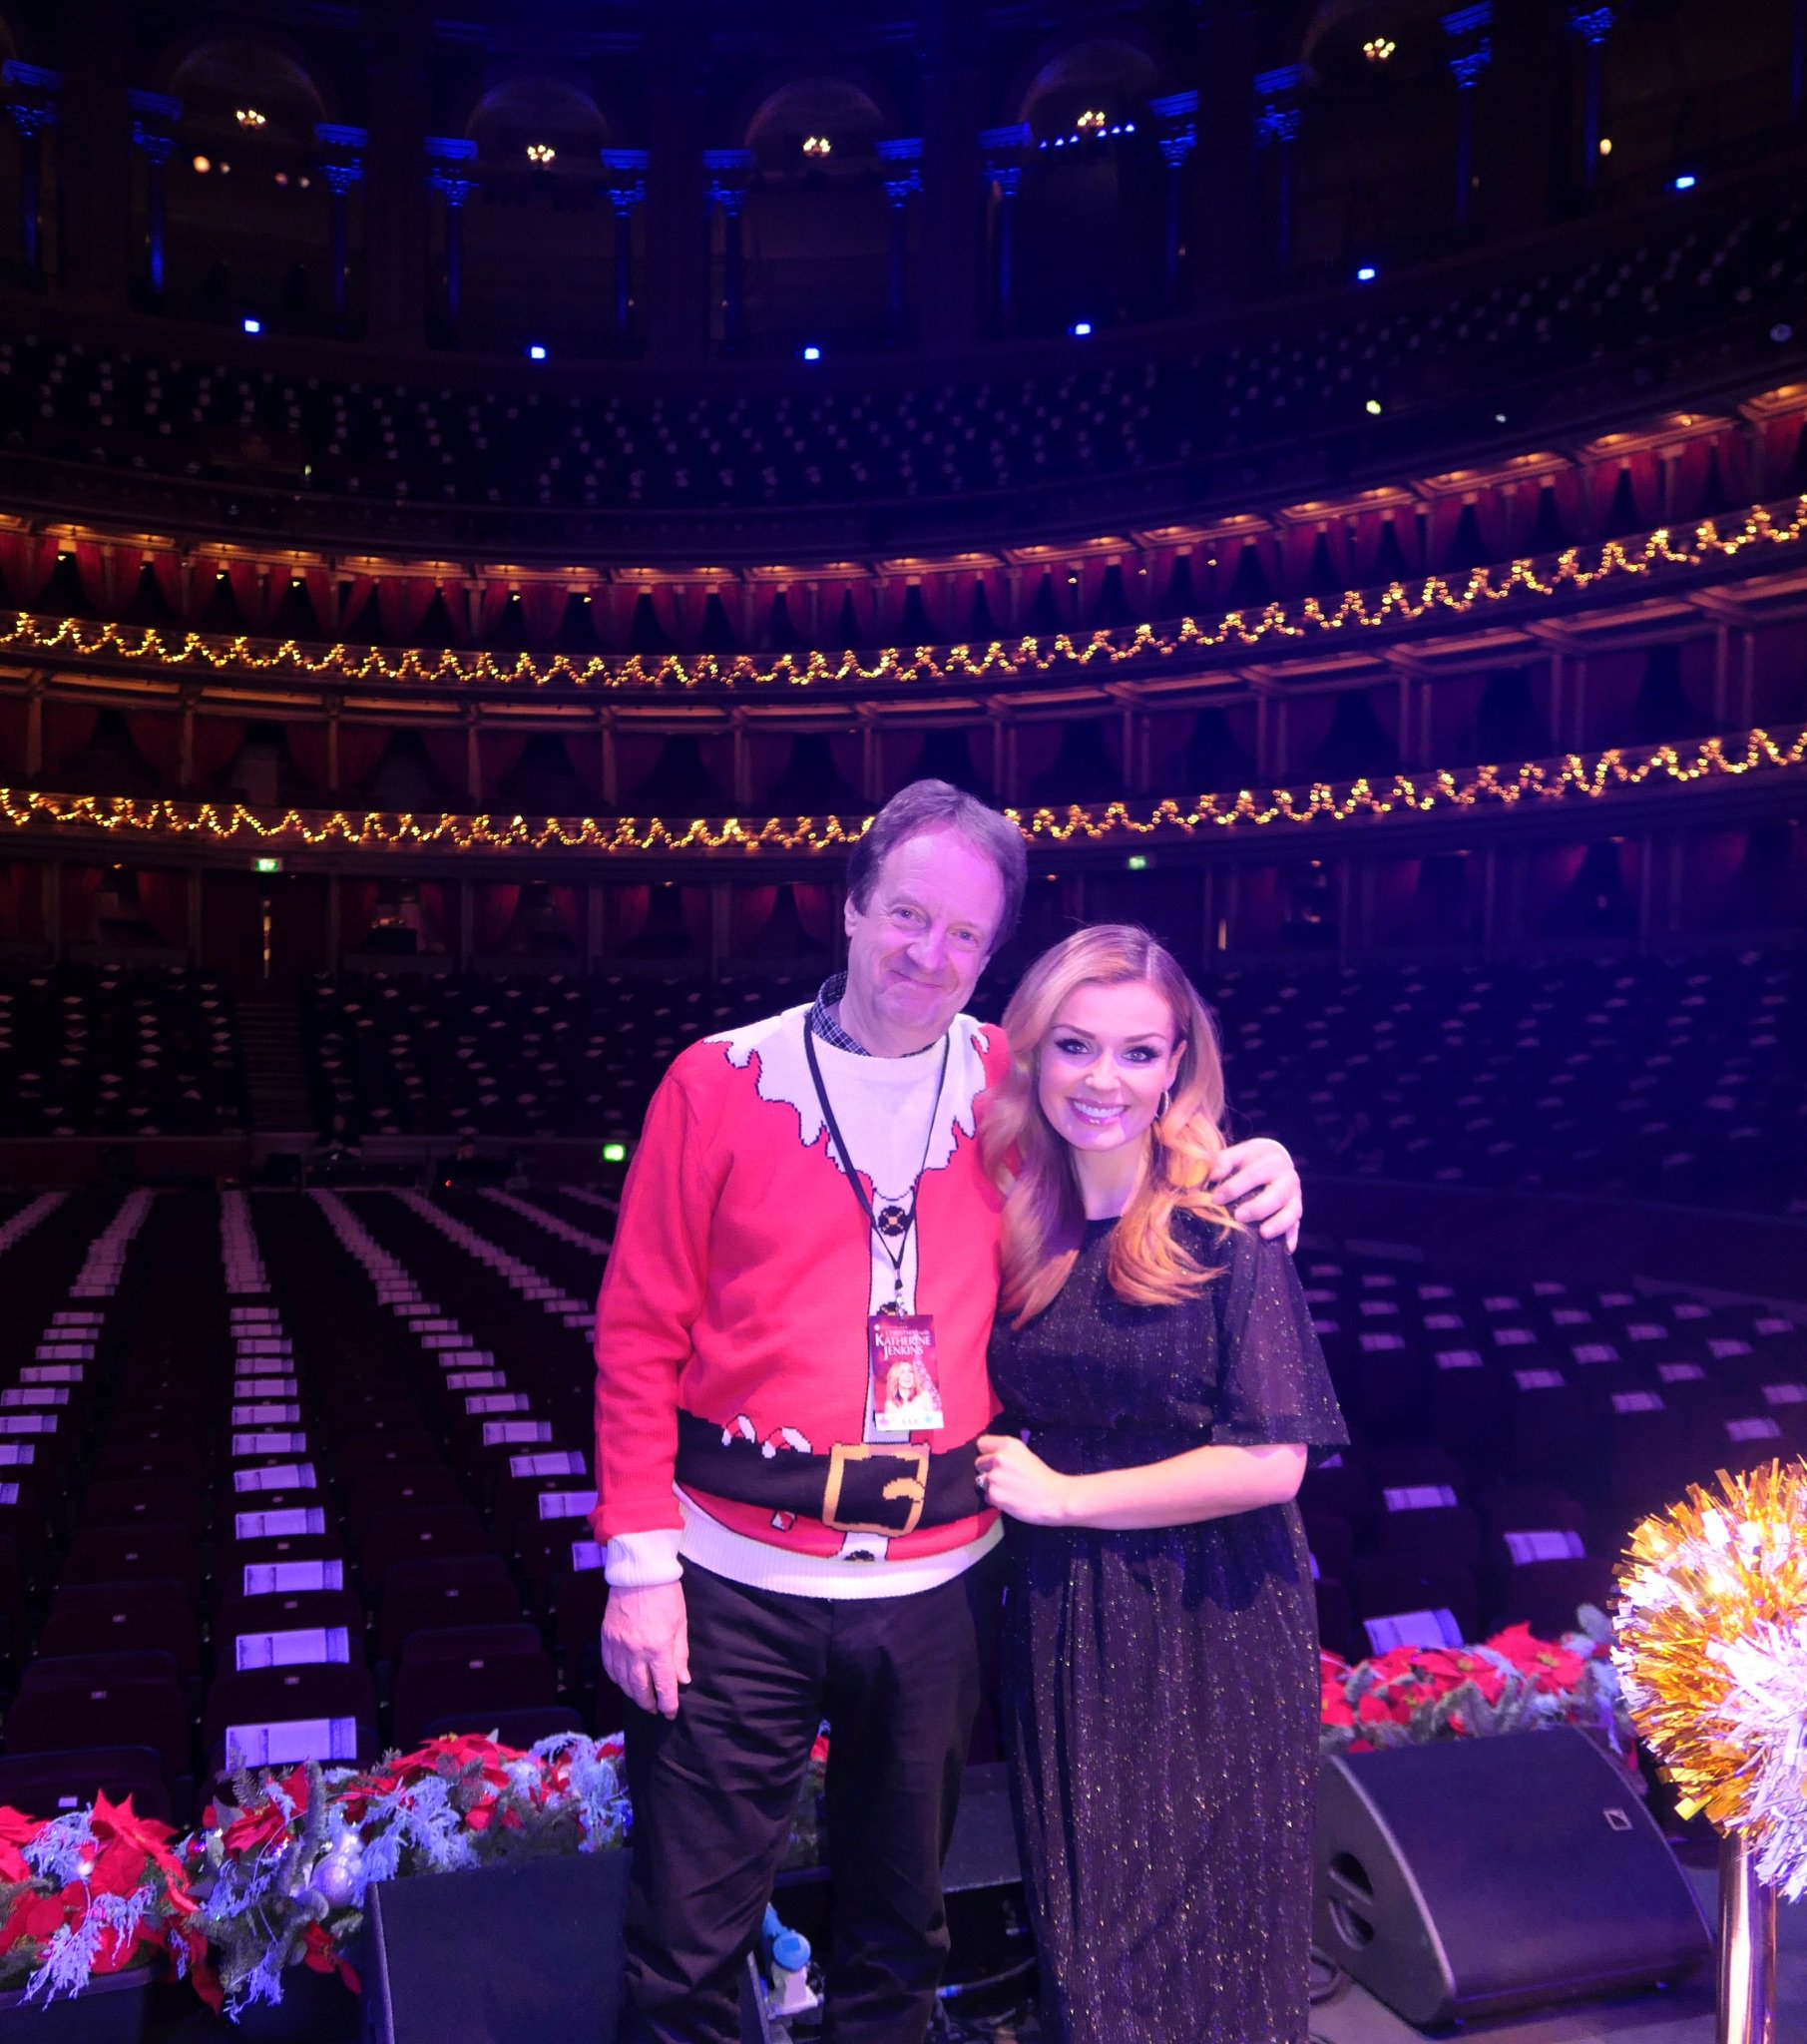 Thank you @anthonyinglis for being my Maestro for all these years! And we finally remember to get our RAH photo! https://t.co/RdNOiYB8yR